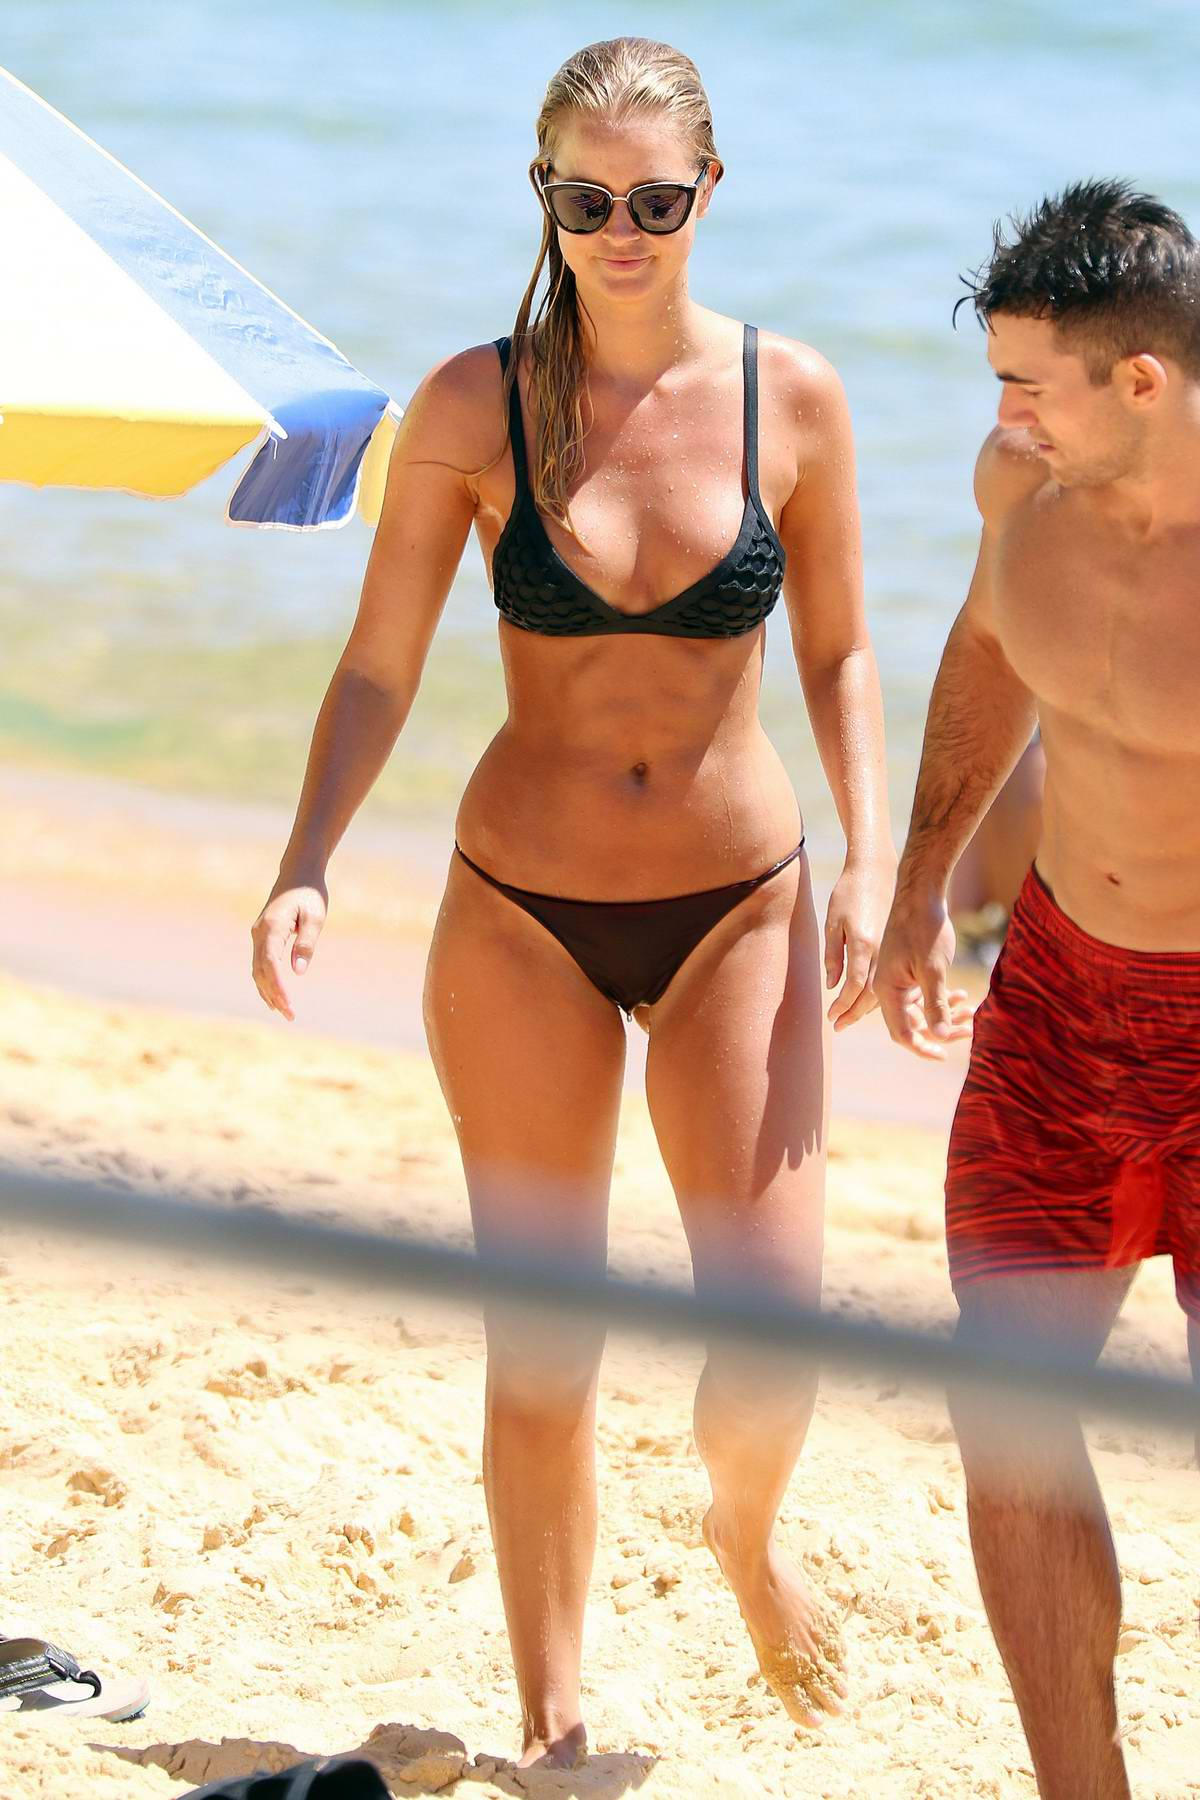 Renae Ayris wears a black bikini for a beach outing with her boyfriend at Bondi beach in Sydney, Australia